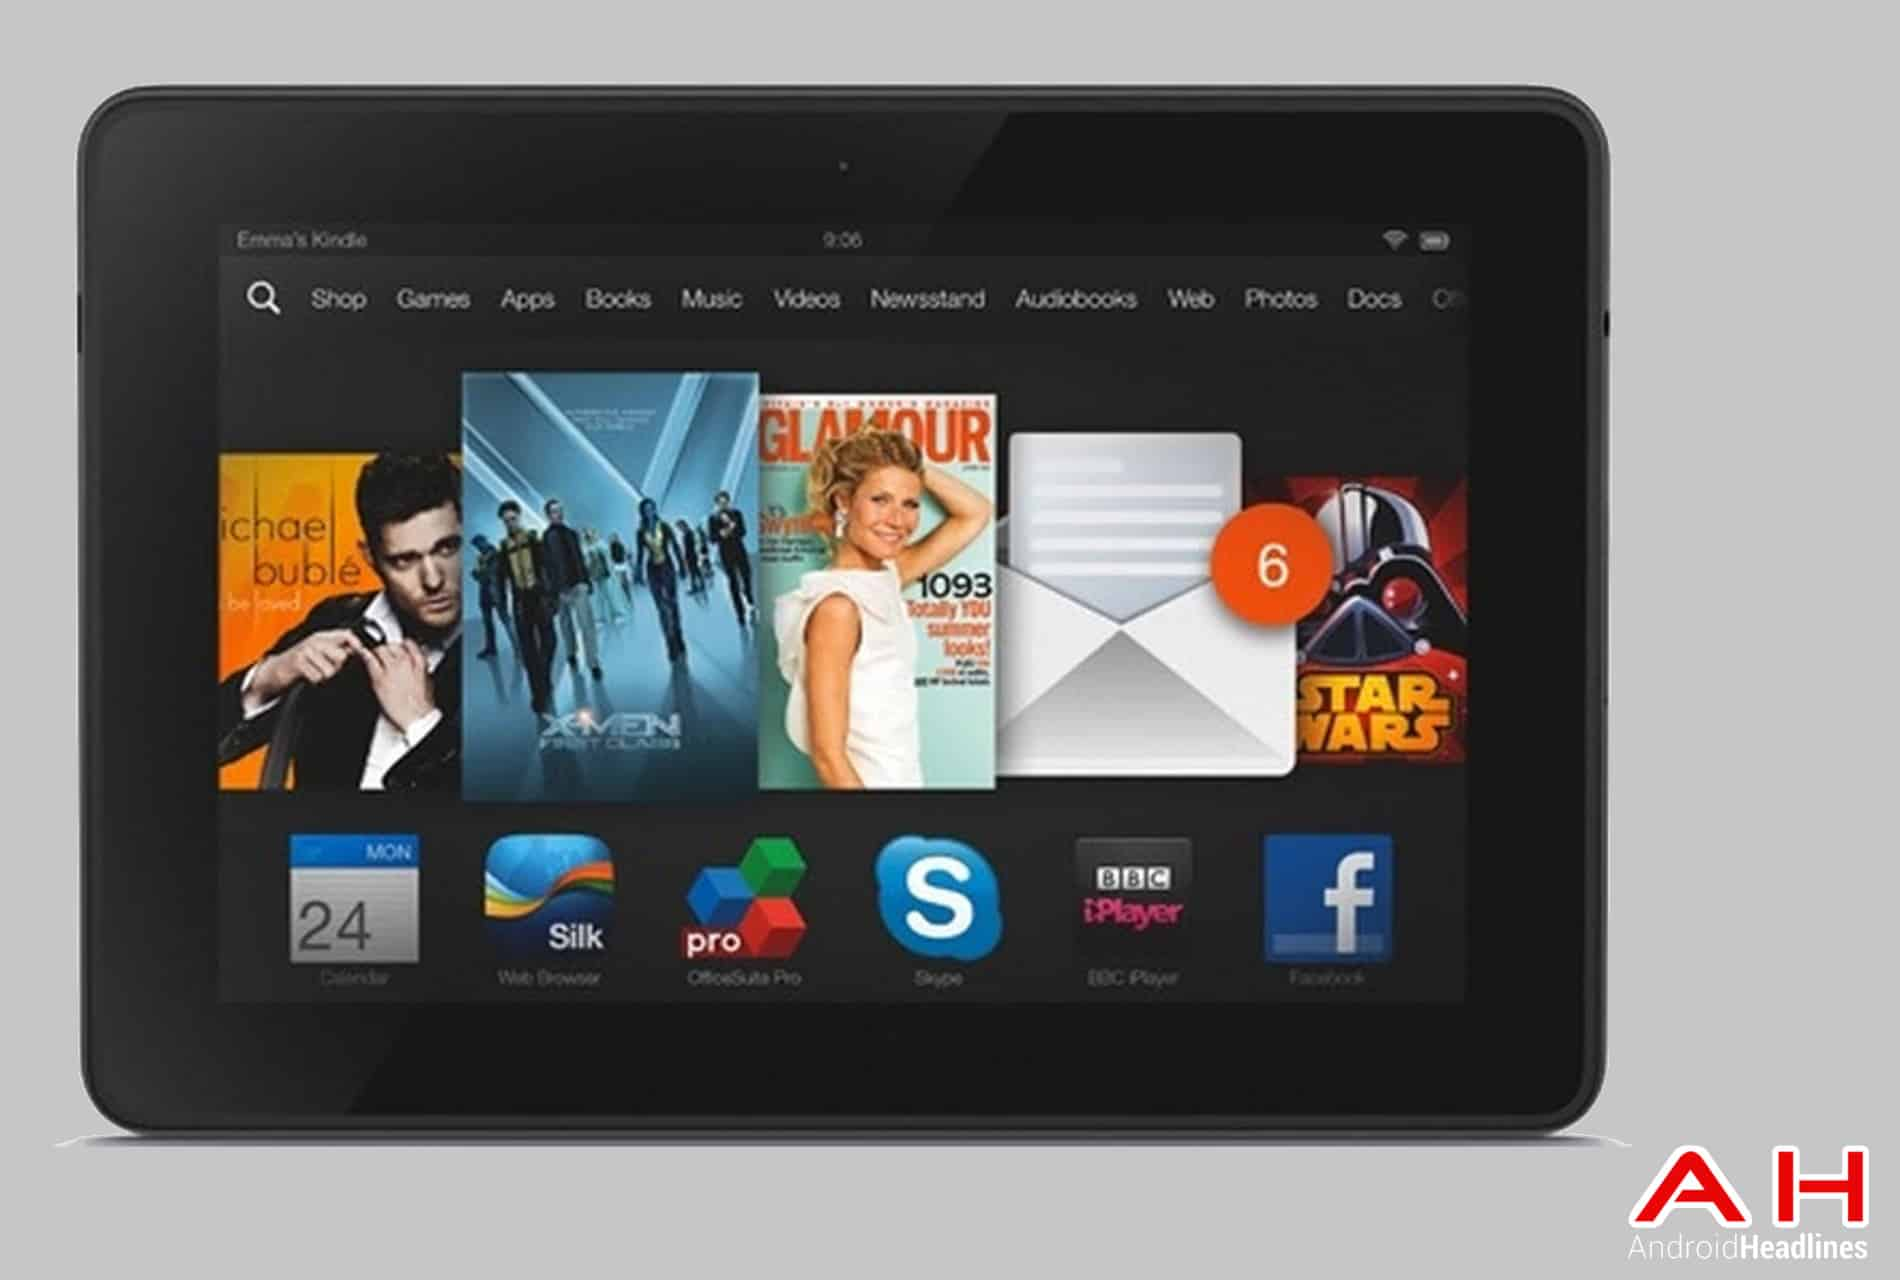 Kindle Fire HDX 8.9 cam AH